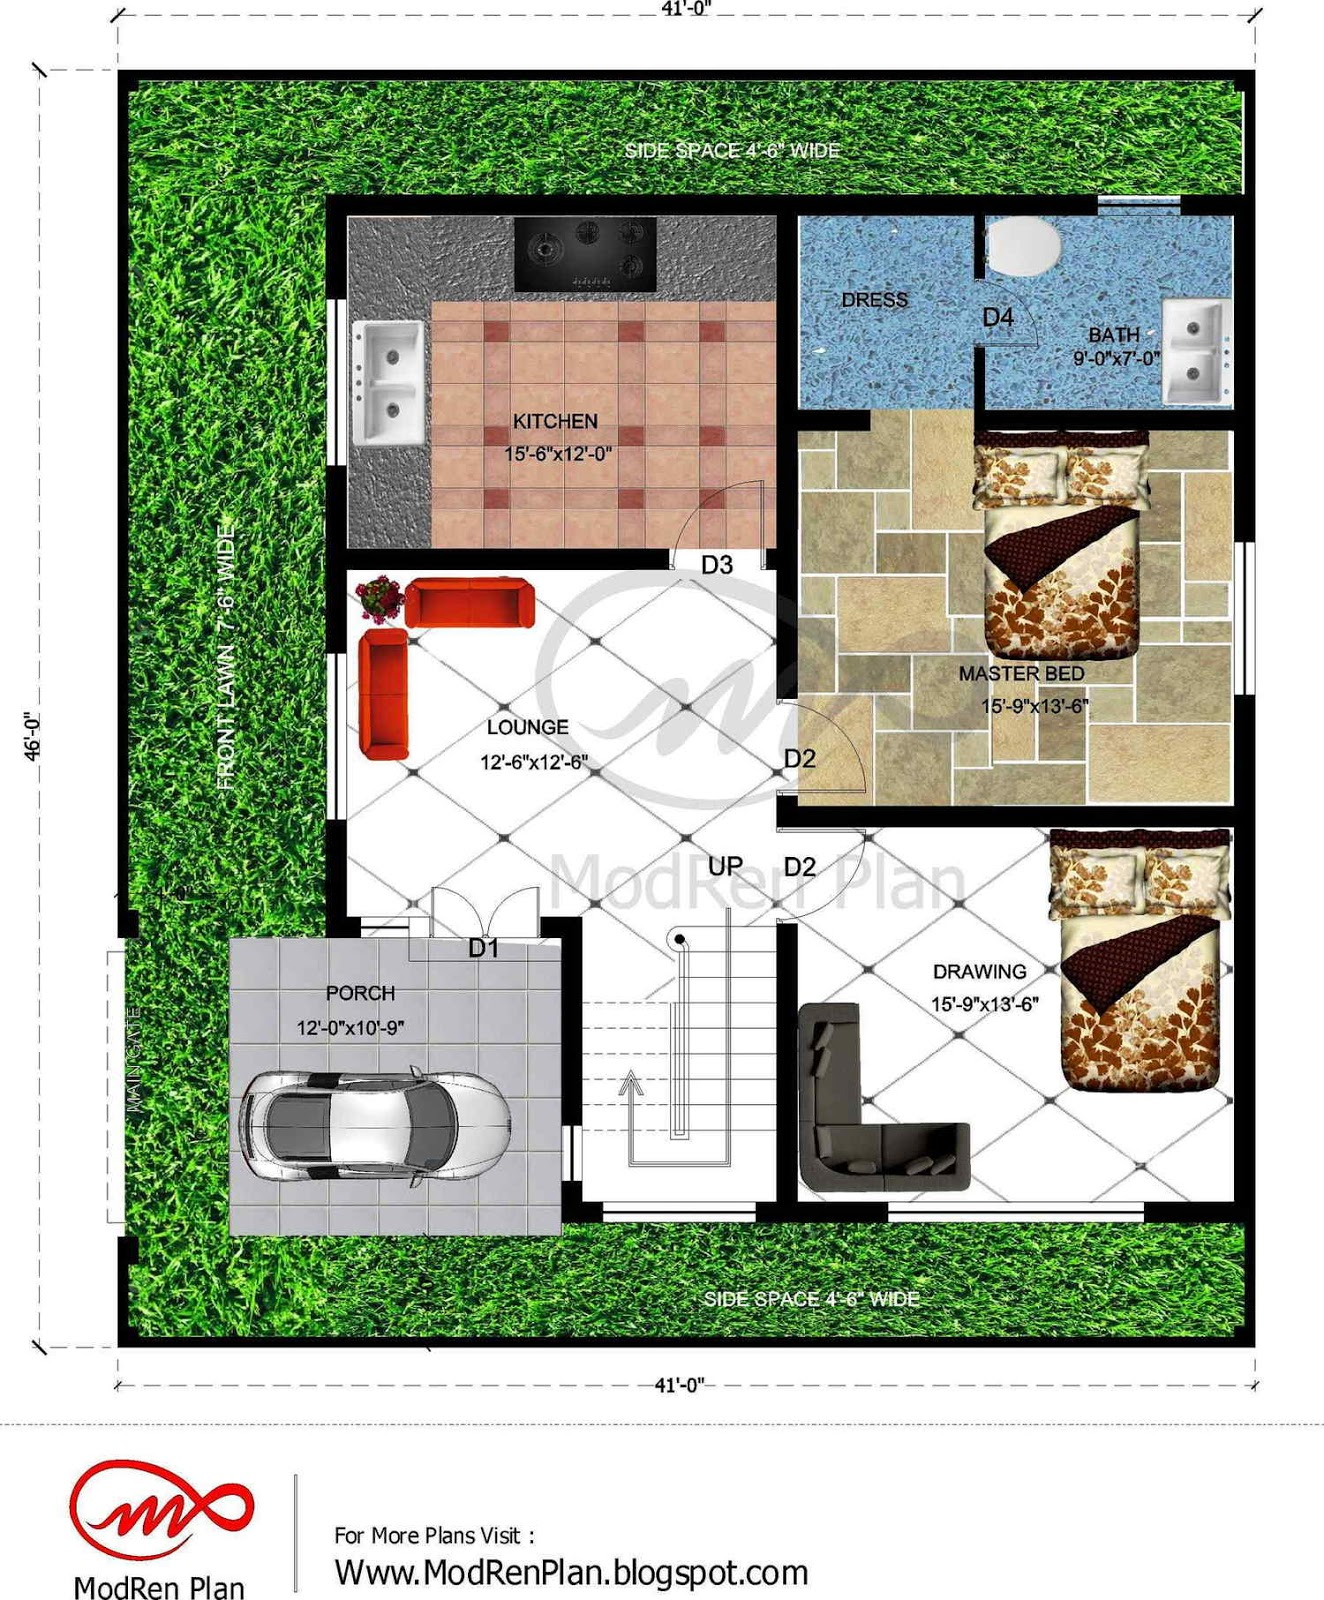 7 Marla House Plan 1800 Sq Ft 46x41 Feet